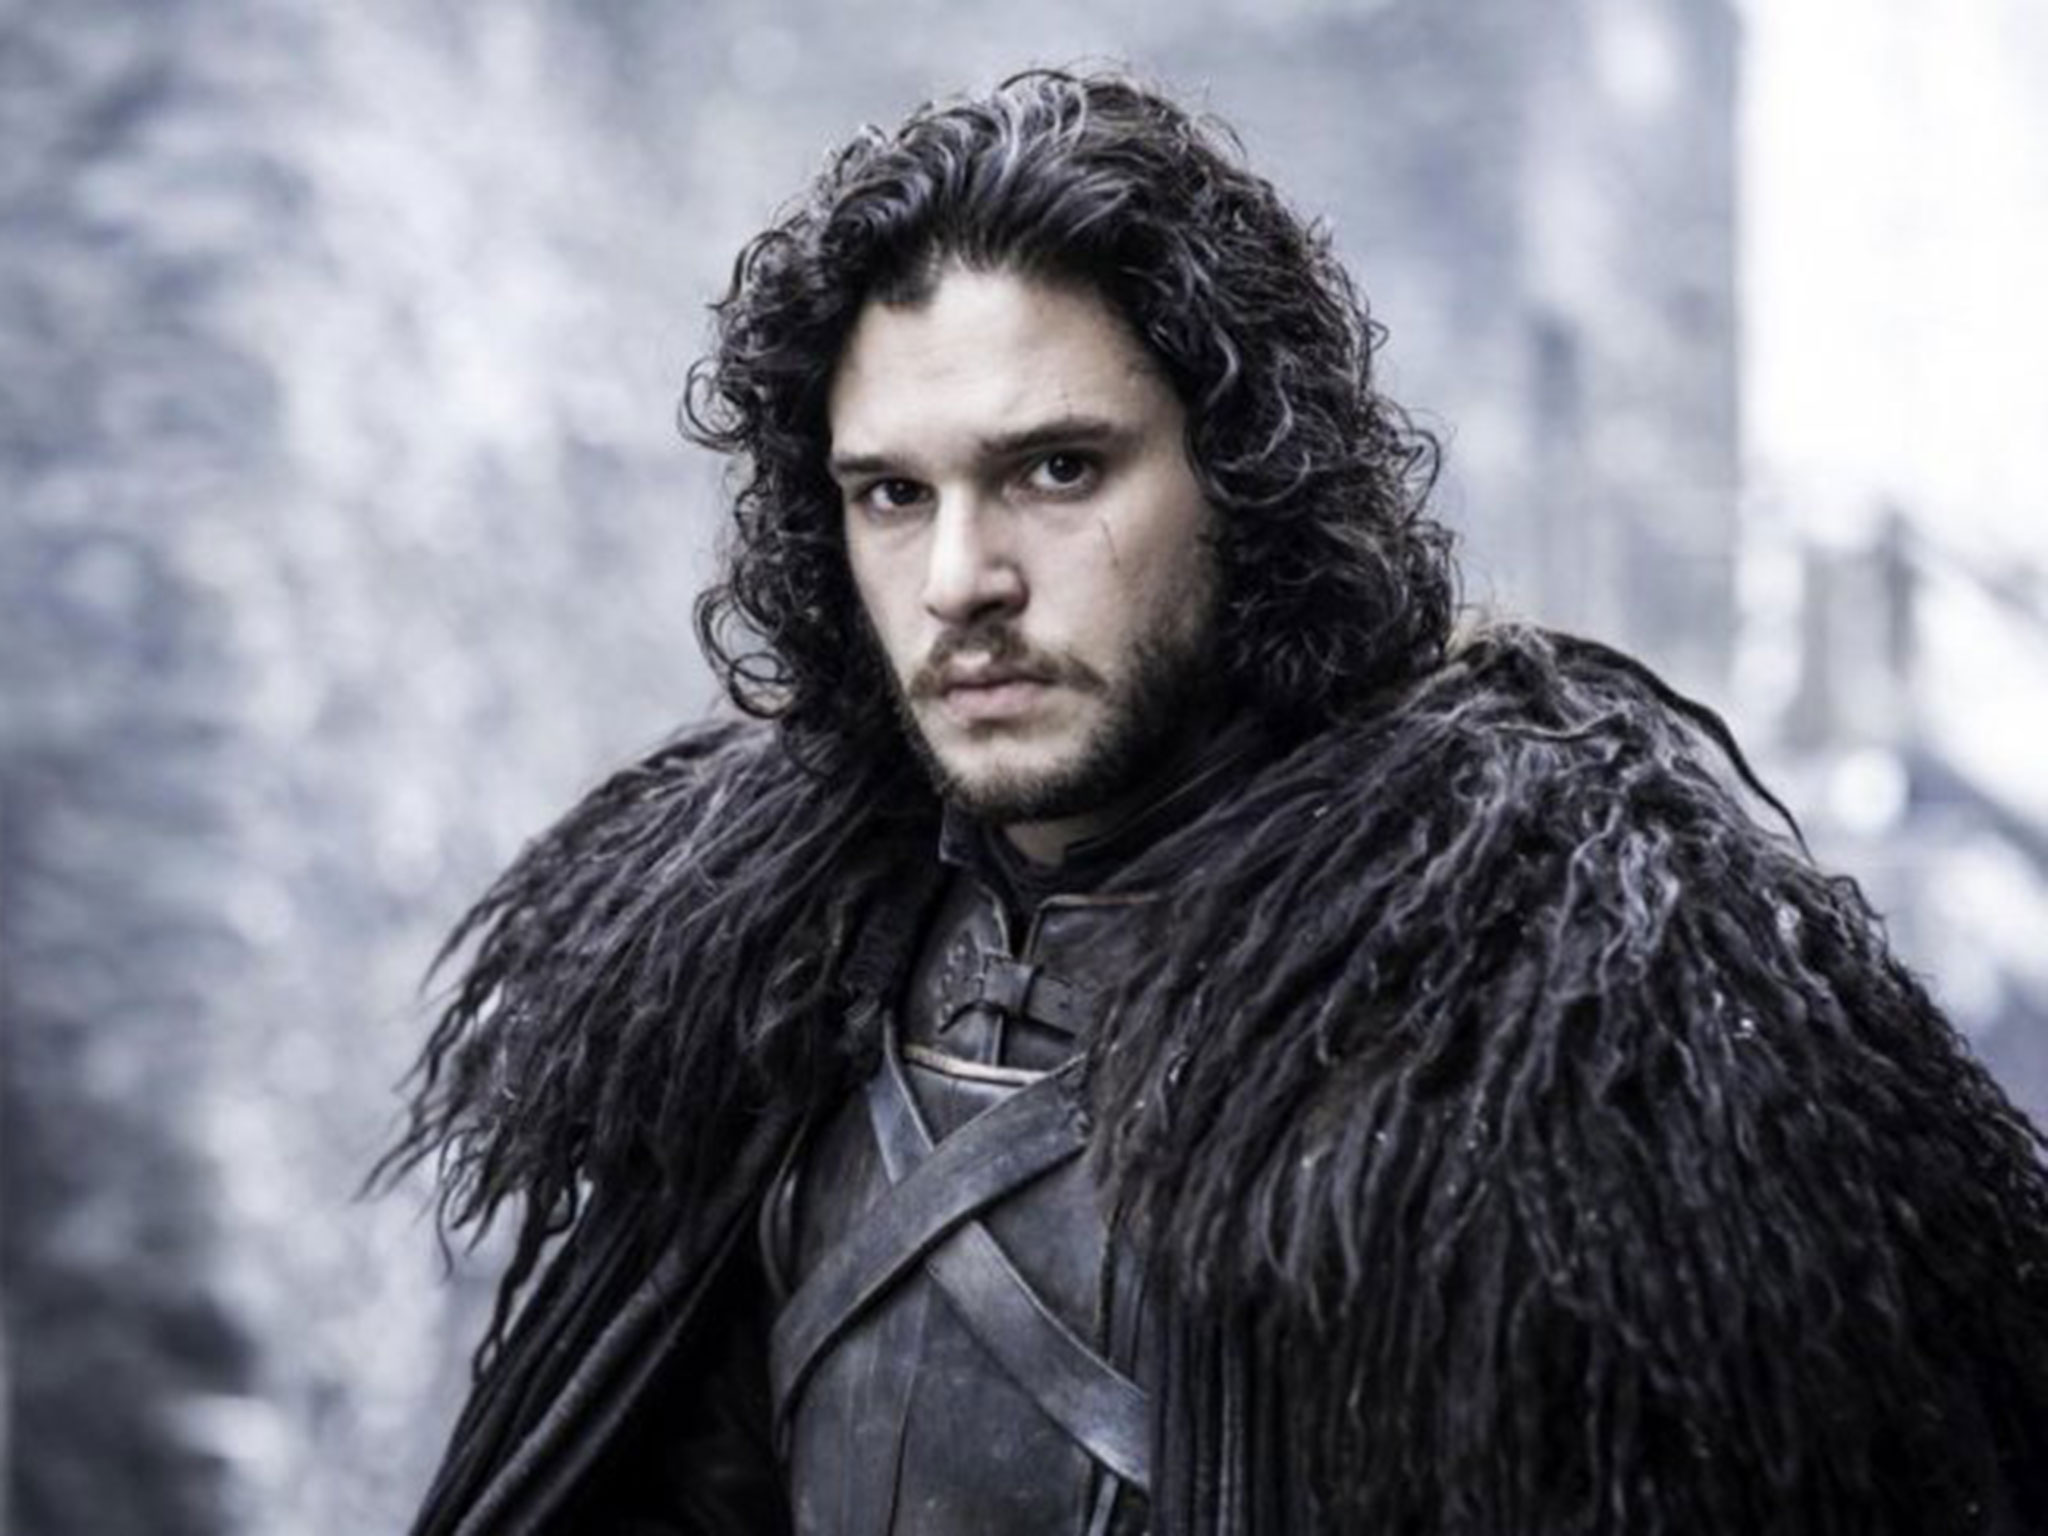 Game of Thrones season 6: Jon Snow seemingly confirmed dead by season 5 script   The Independent